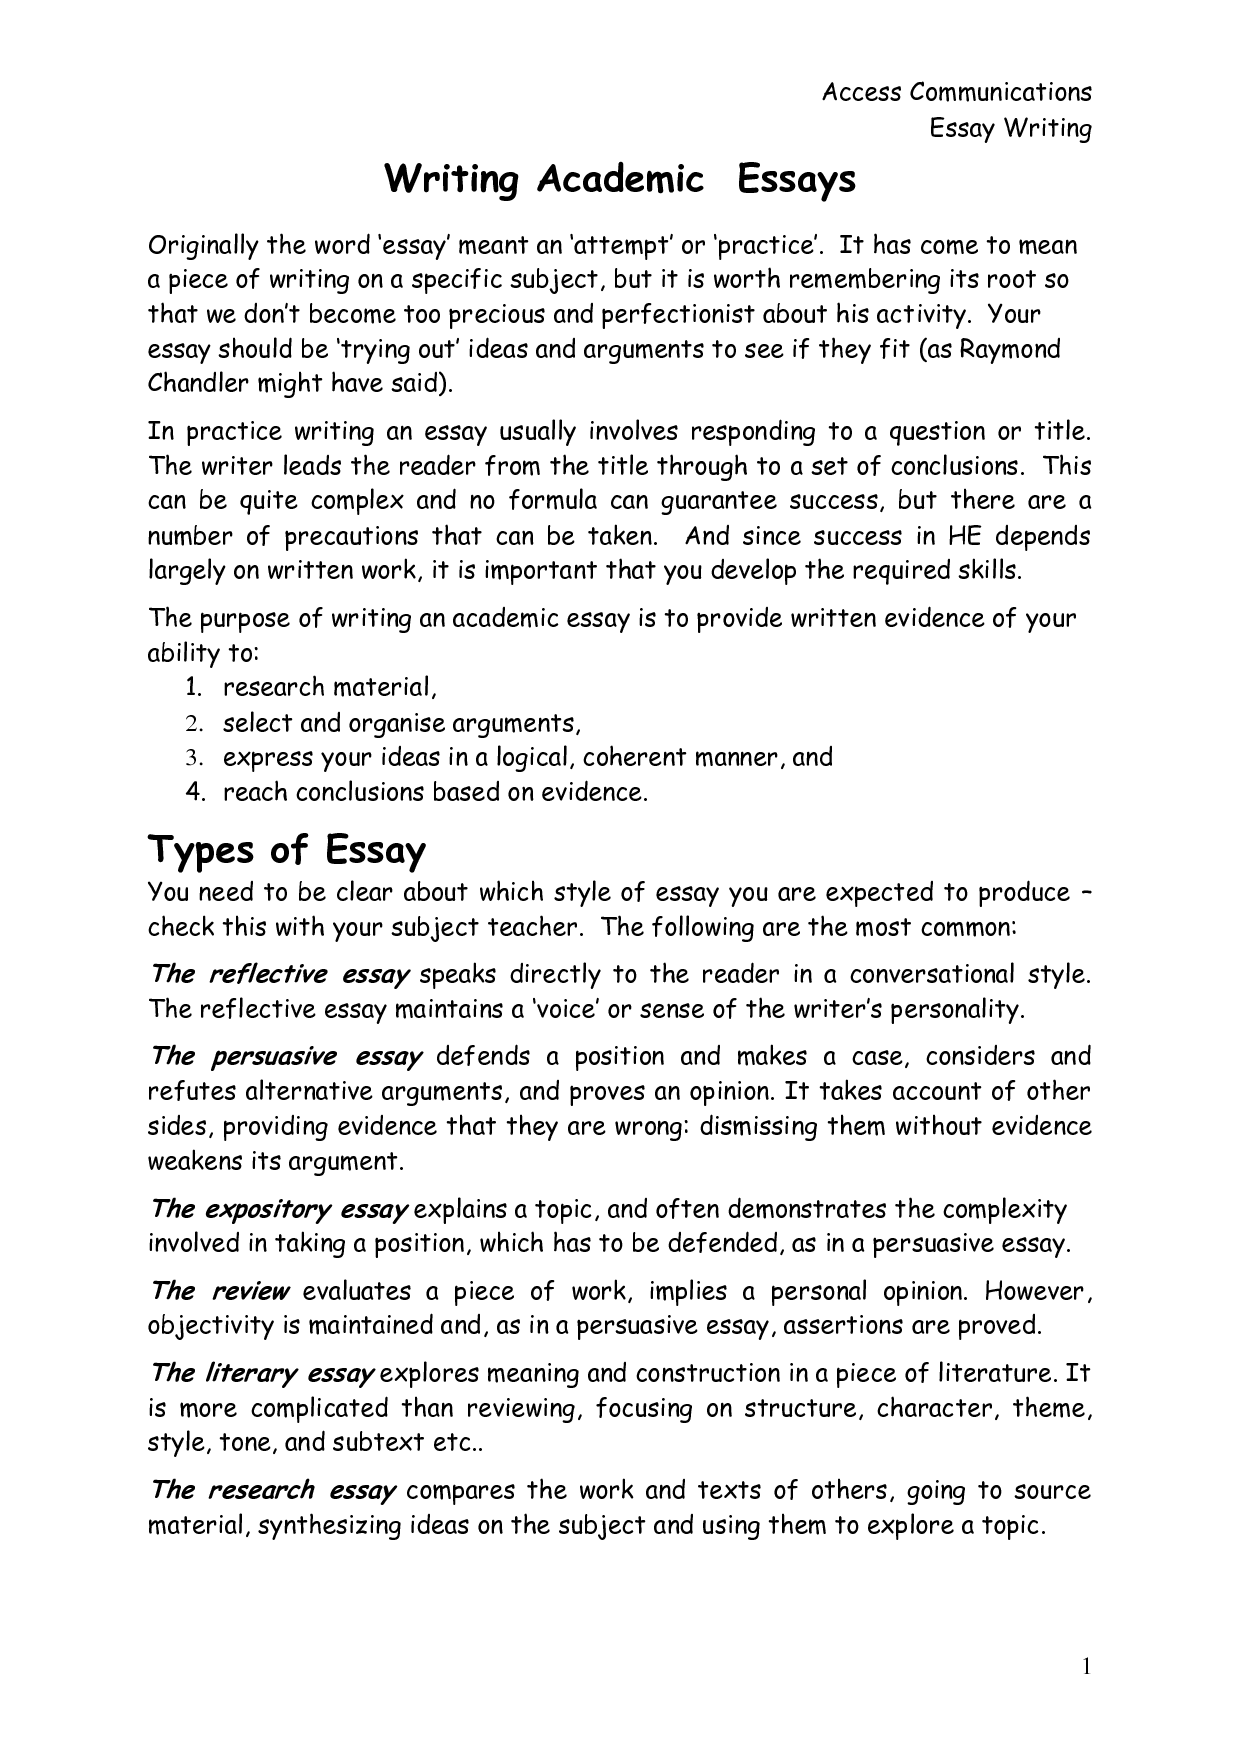 017 Essay Example Write For Me Amazing My Discount Code Online Free Full